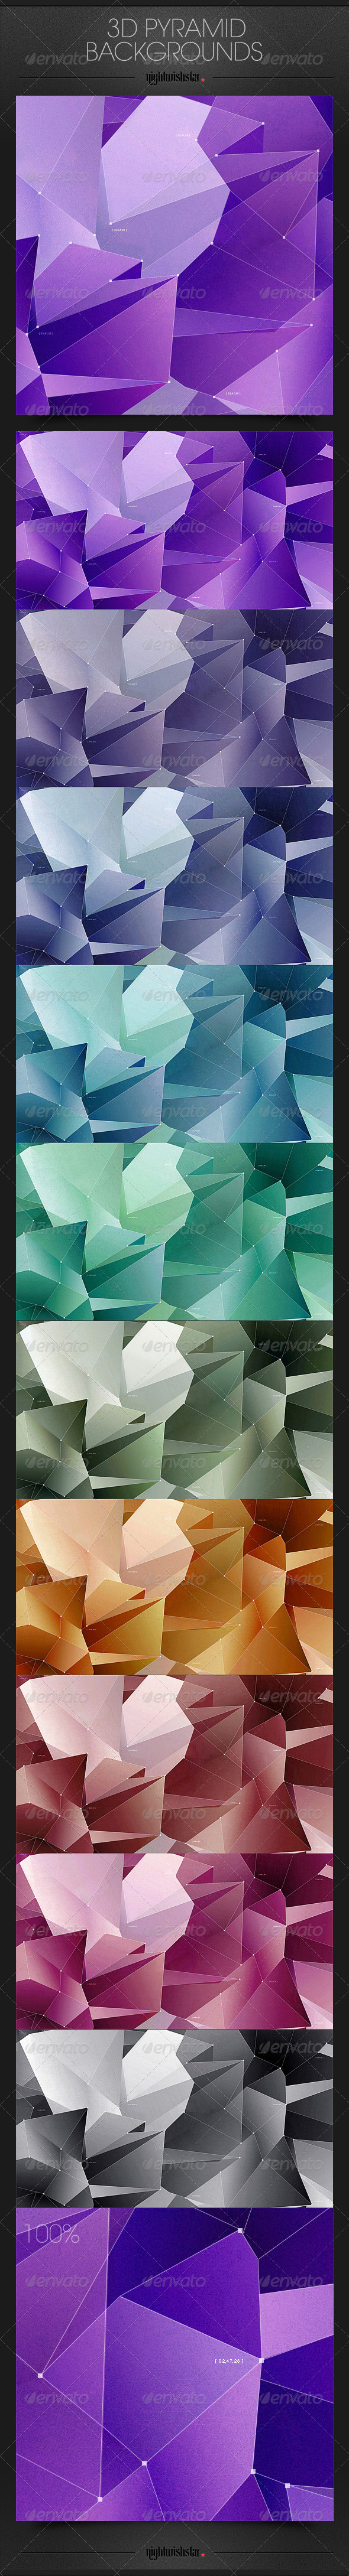 GraphicRiver 3D Pyramid Blocks Backgrounds 6550538